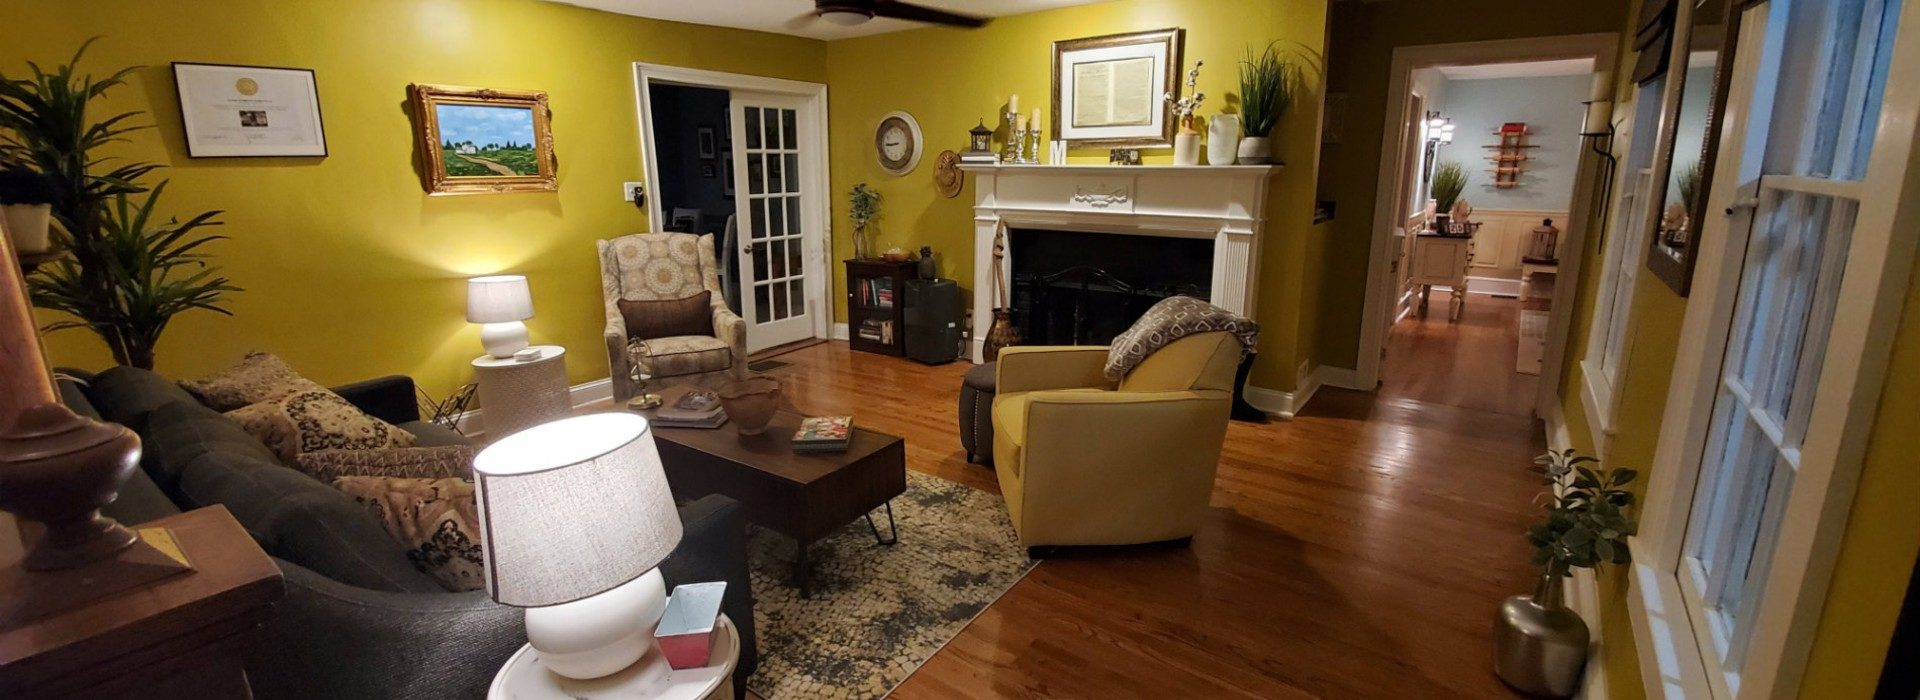 LIving room in gold and tan colors